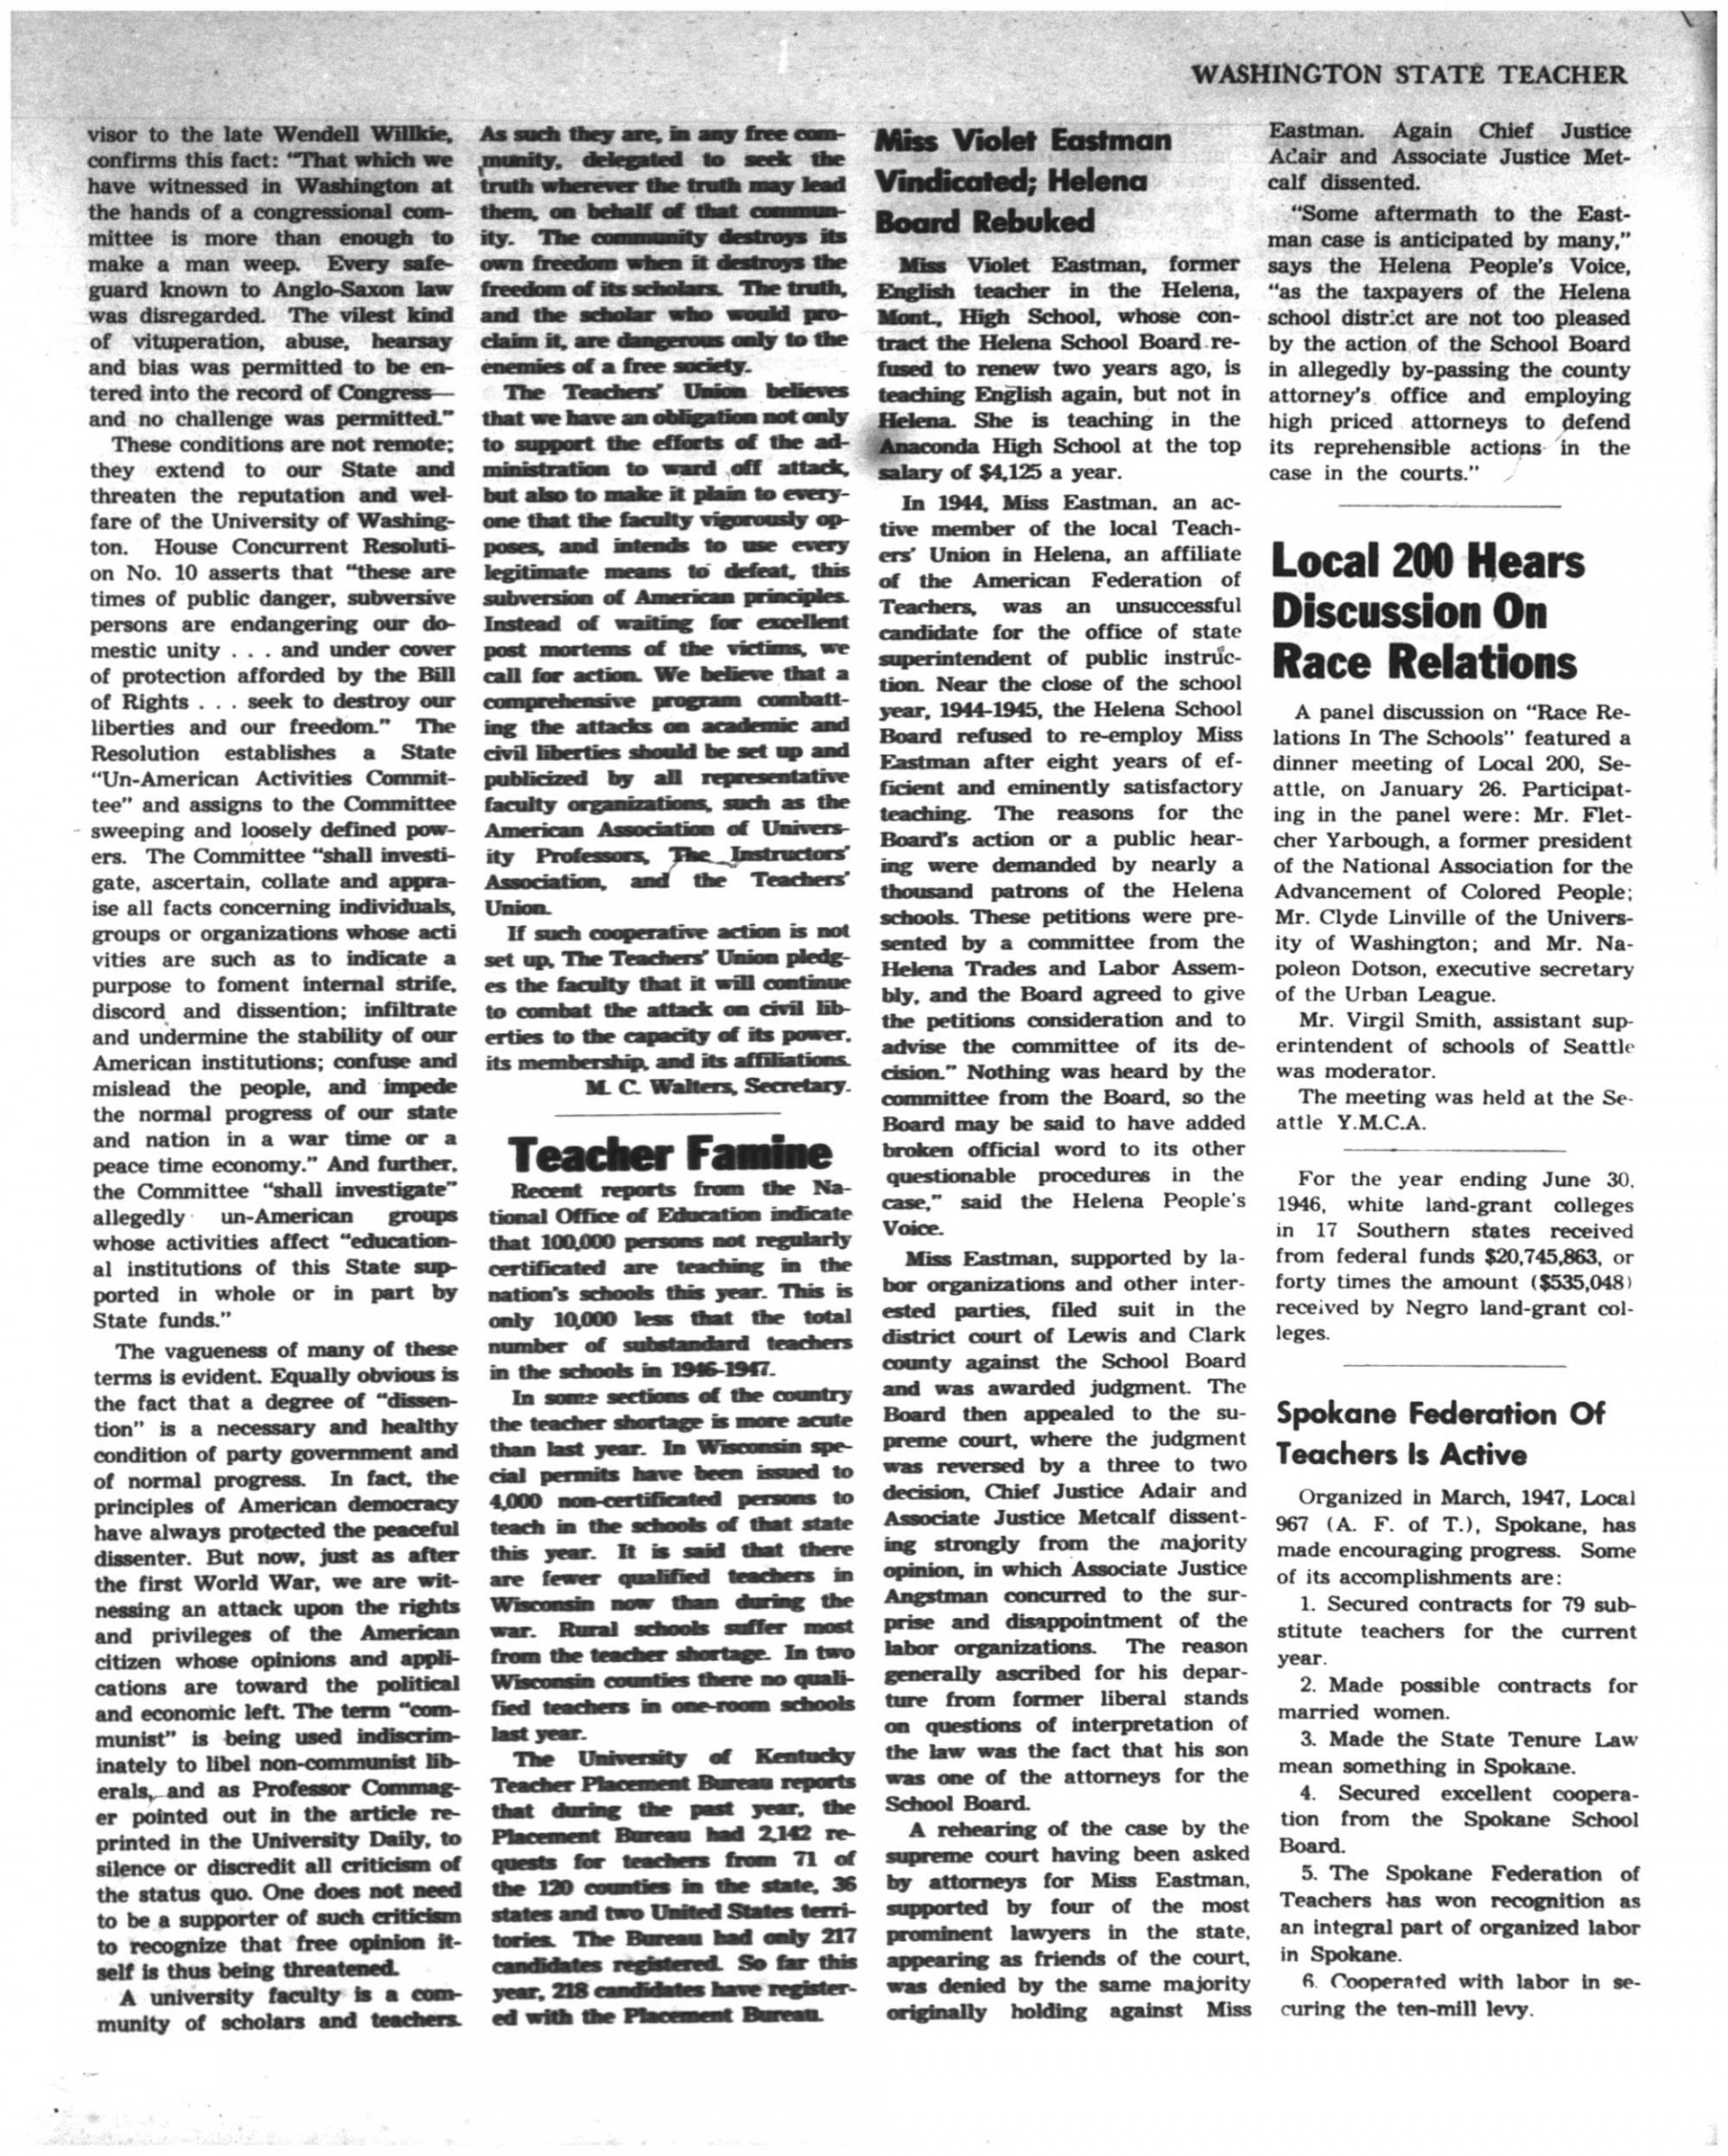 015 Concept Essay Mar1948p320uw20local20401 Race Large Fearsome On Racism Paper Examples Beauty 1920